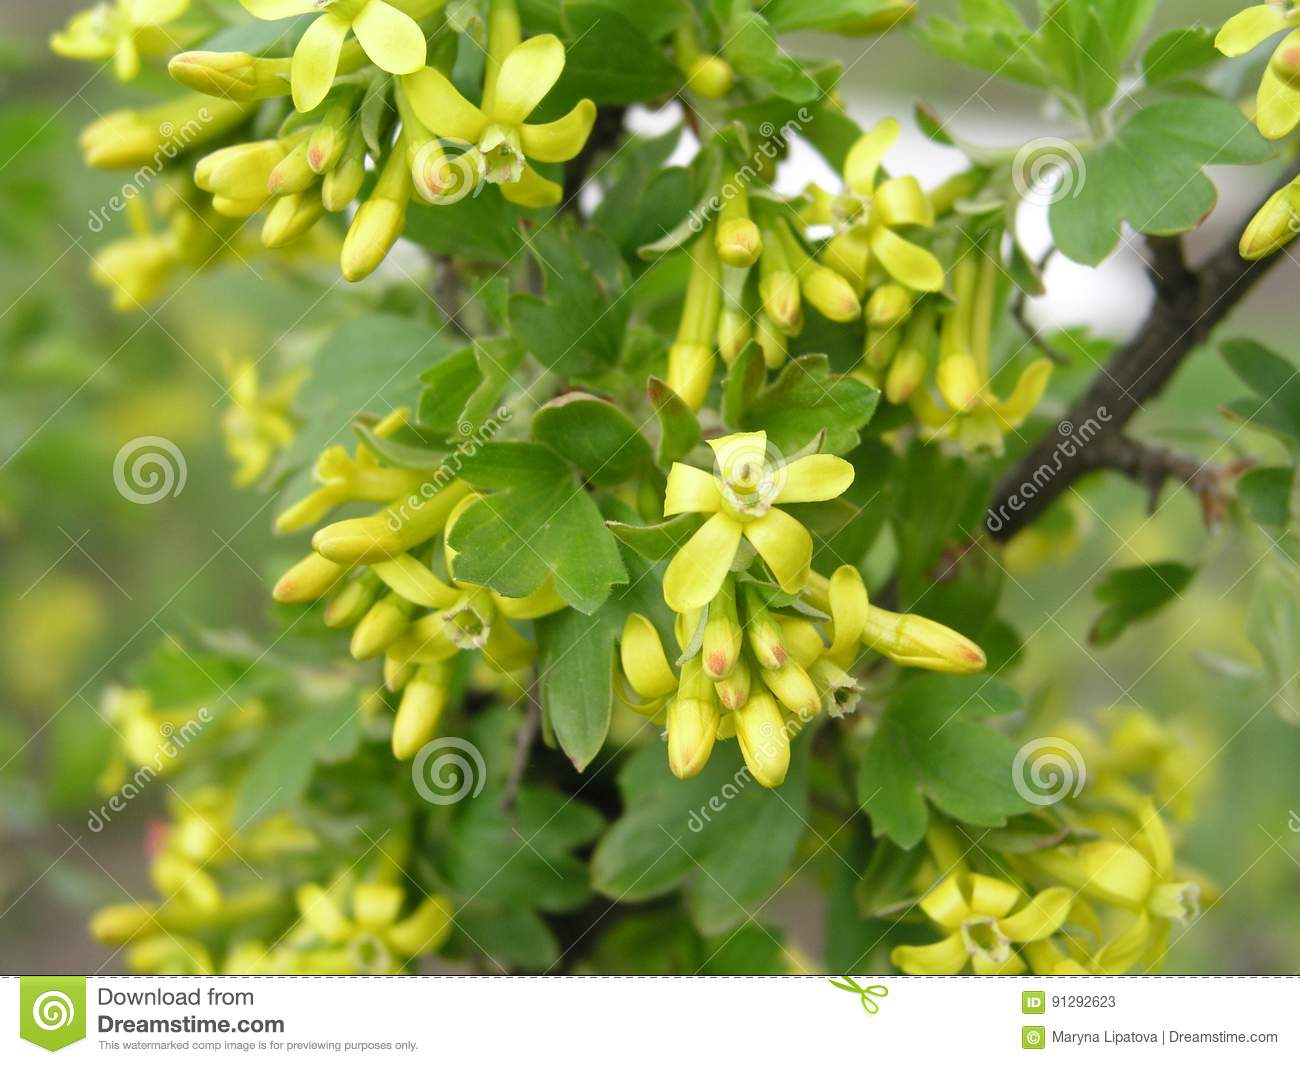 Ribes Aureum Yellow Currant Clove Currant Pruterberry And Buffalo